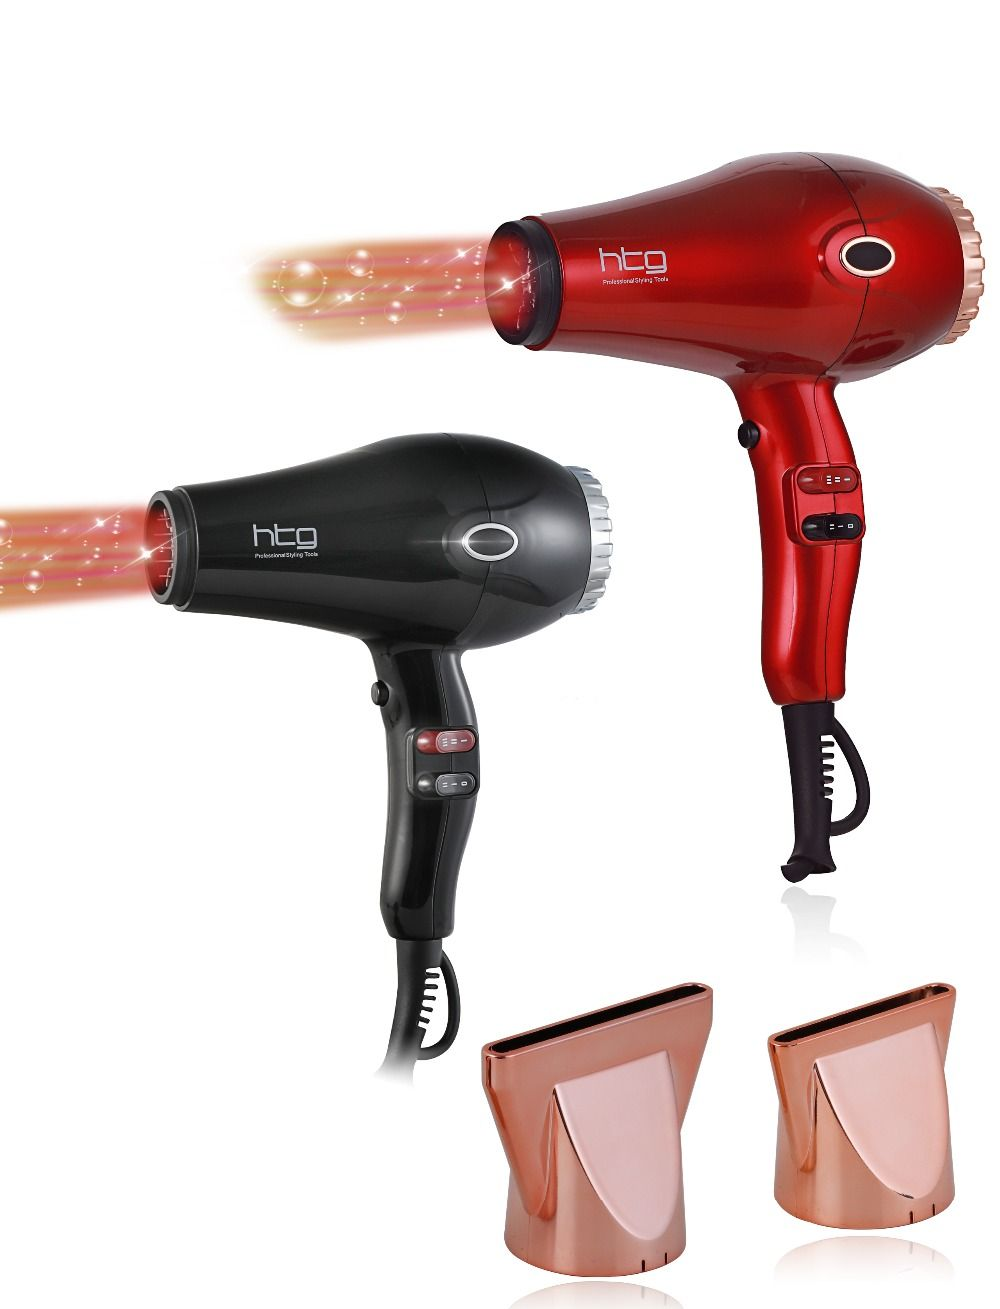 RUSSIA Ship HTG 2300W powerful professional Hair Dryer Blow Dryer Lightweight Negative ion infrared Hair Dryer 110V/240V